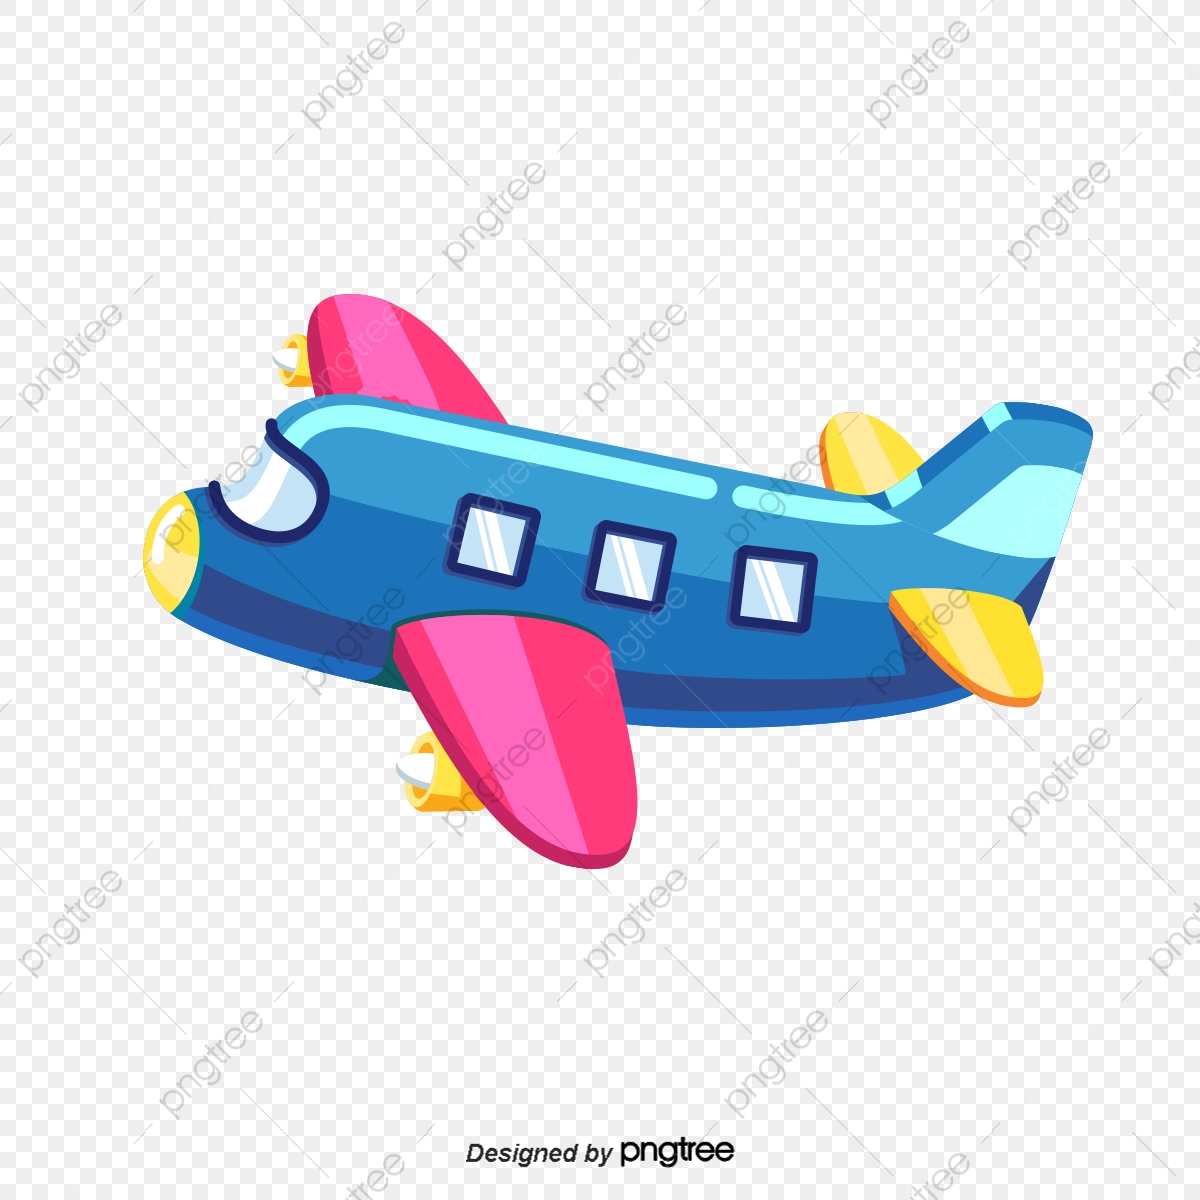 Vector Cartoon Airplane Material Cartoon Clipart Airplane Clipart Vector Aircraft Png Transparent Clipart Image And Psd File For Free Download